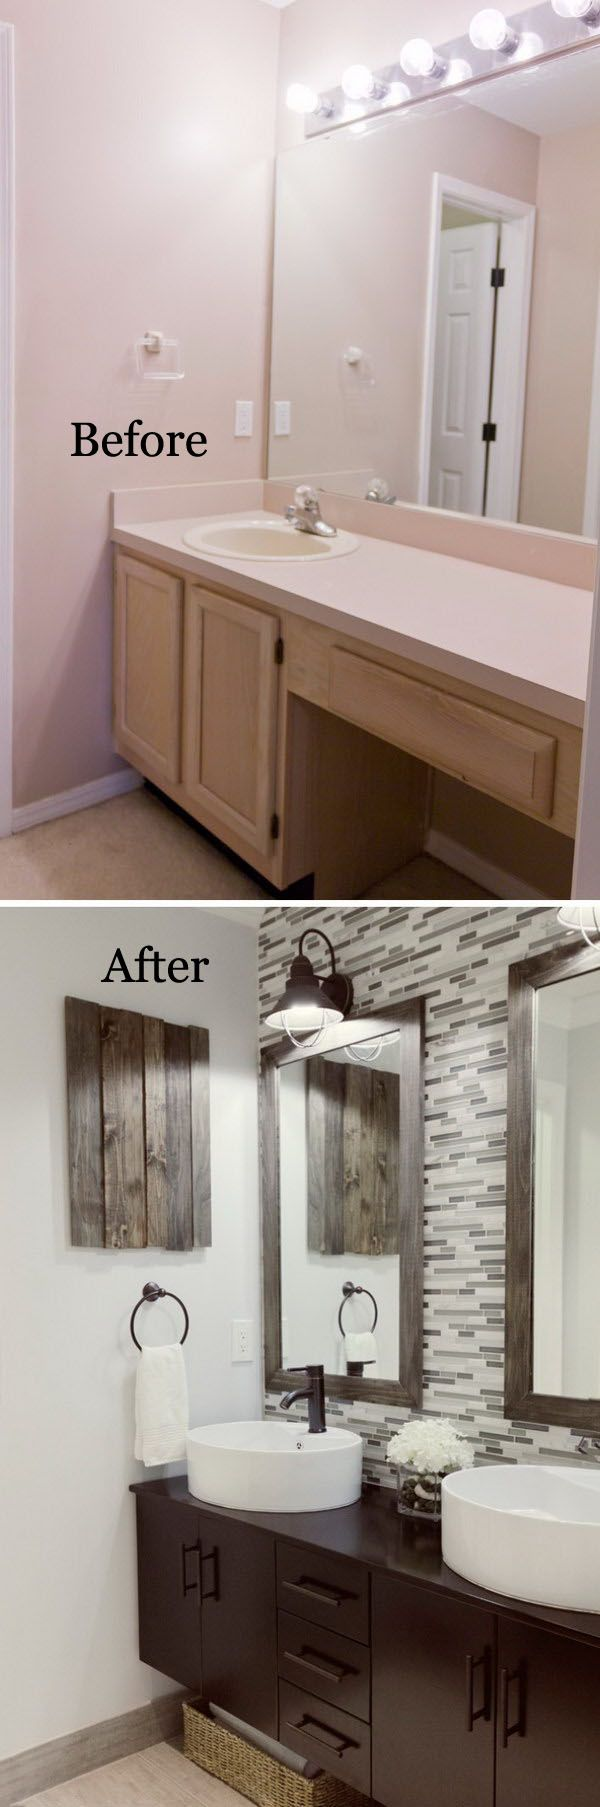 37 Small Bathroom Makeovers Before And After